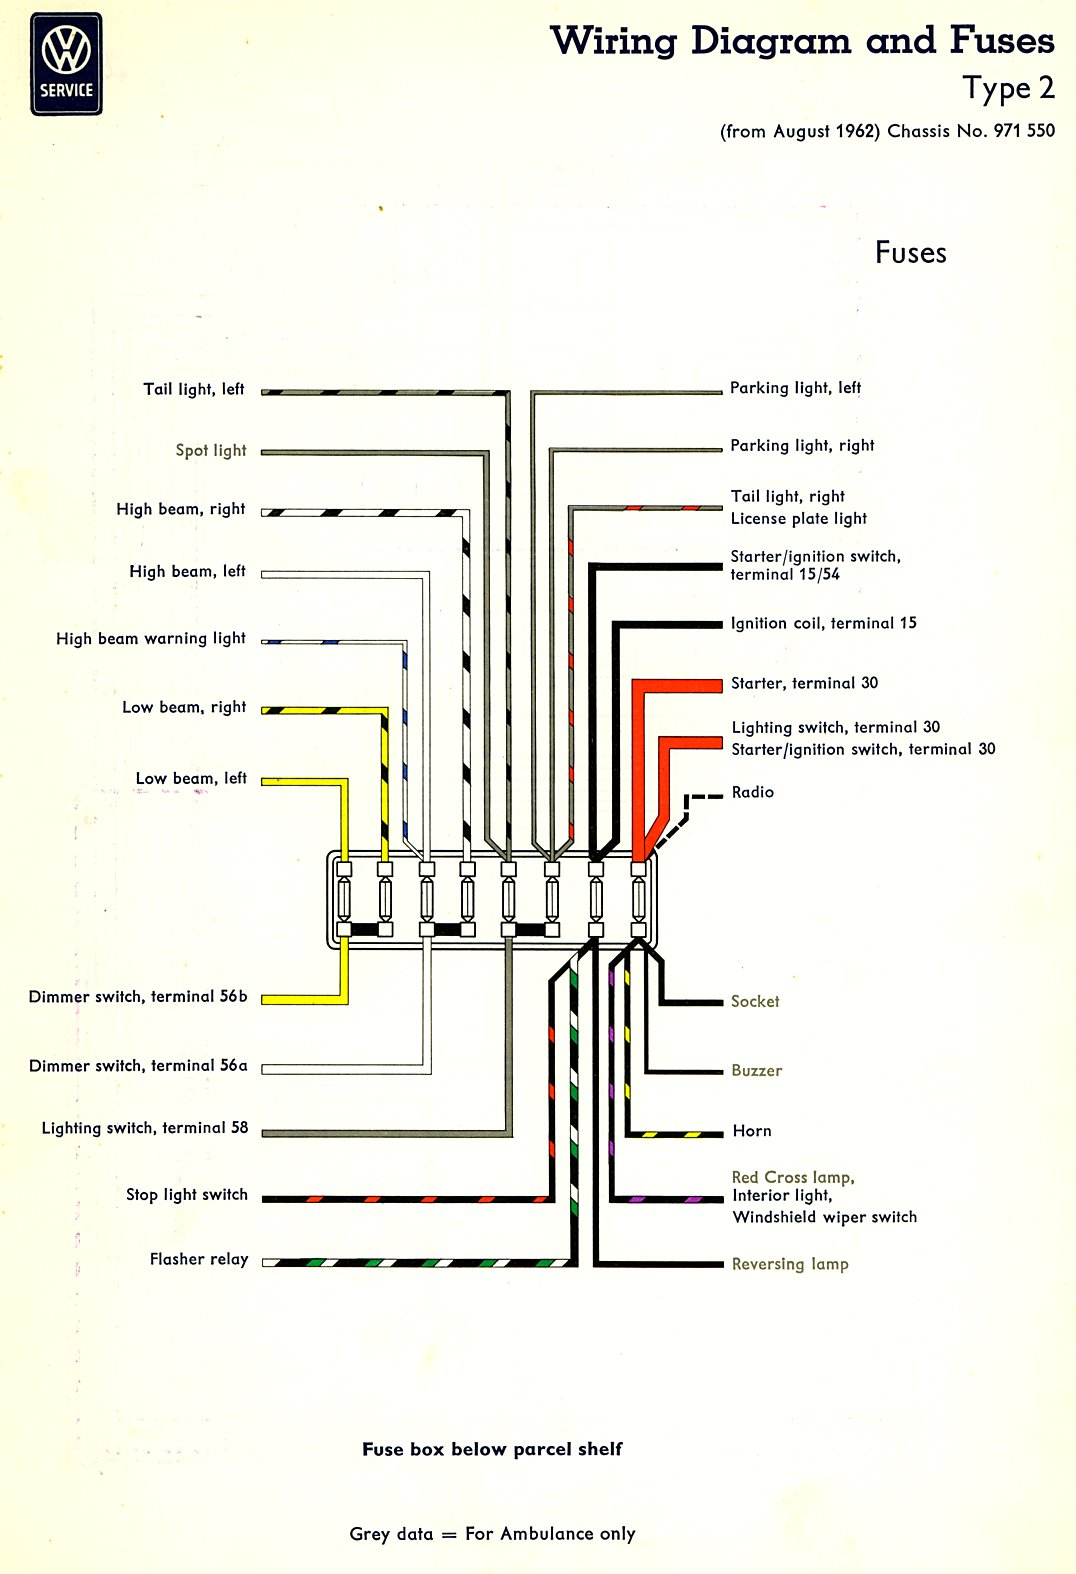 bus_63_fuses thesamba com type 2 wiring diagrams 1979 bronco fuse box diagram at alyssarenee.co